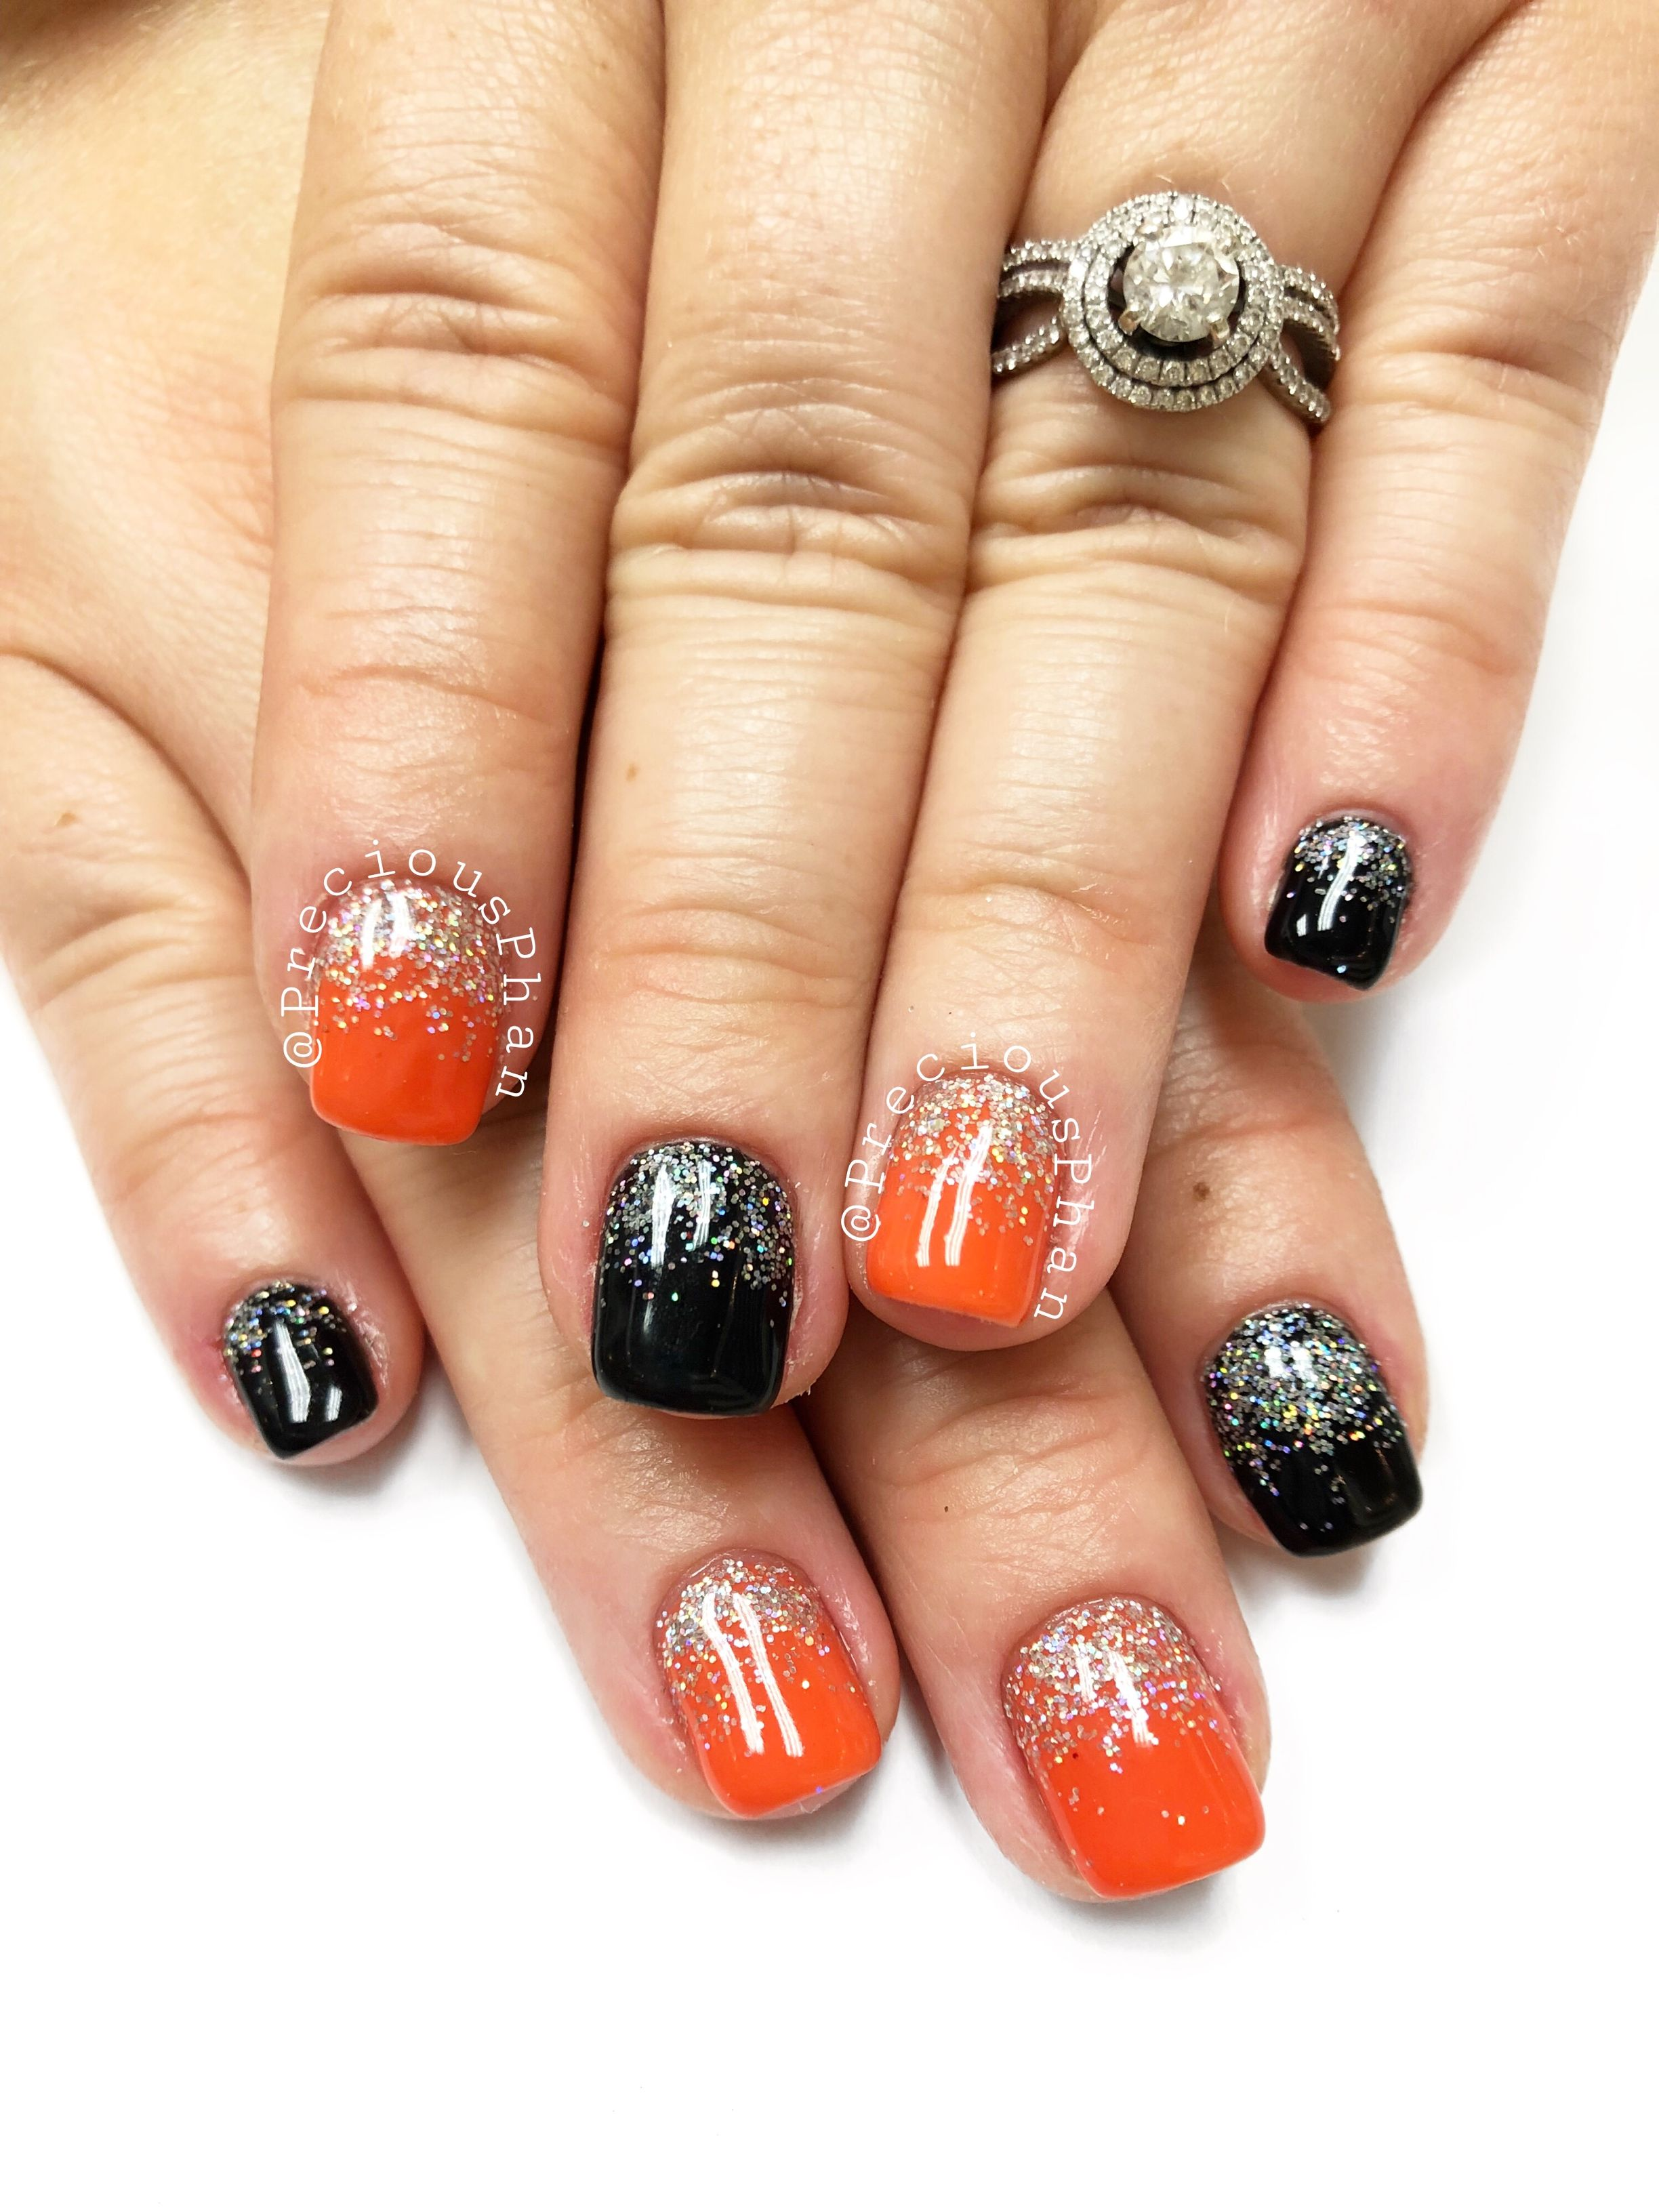 Halloween Nails Black And Orange Ombre Nails Preciousphan Ombre Nails Orange Ombre Nails Nails